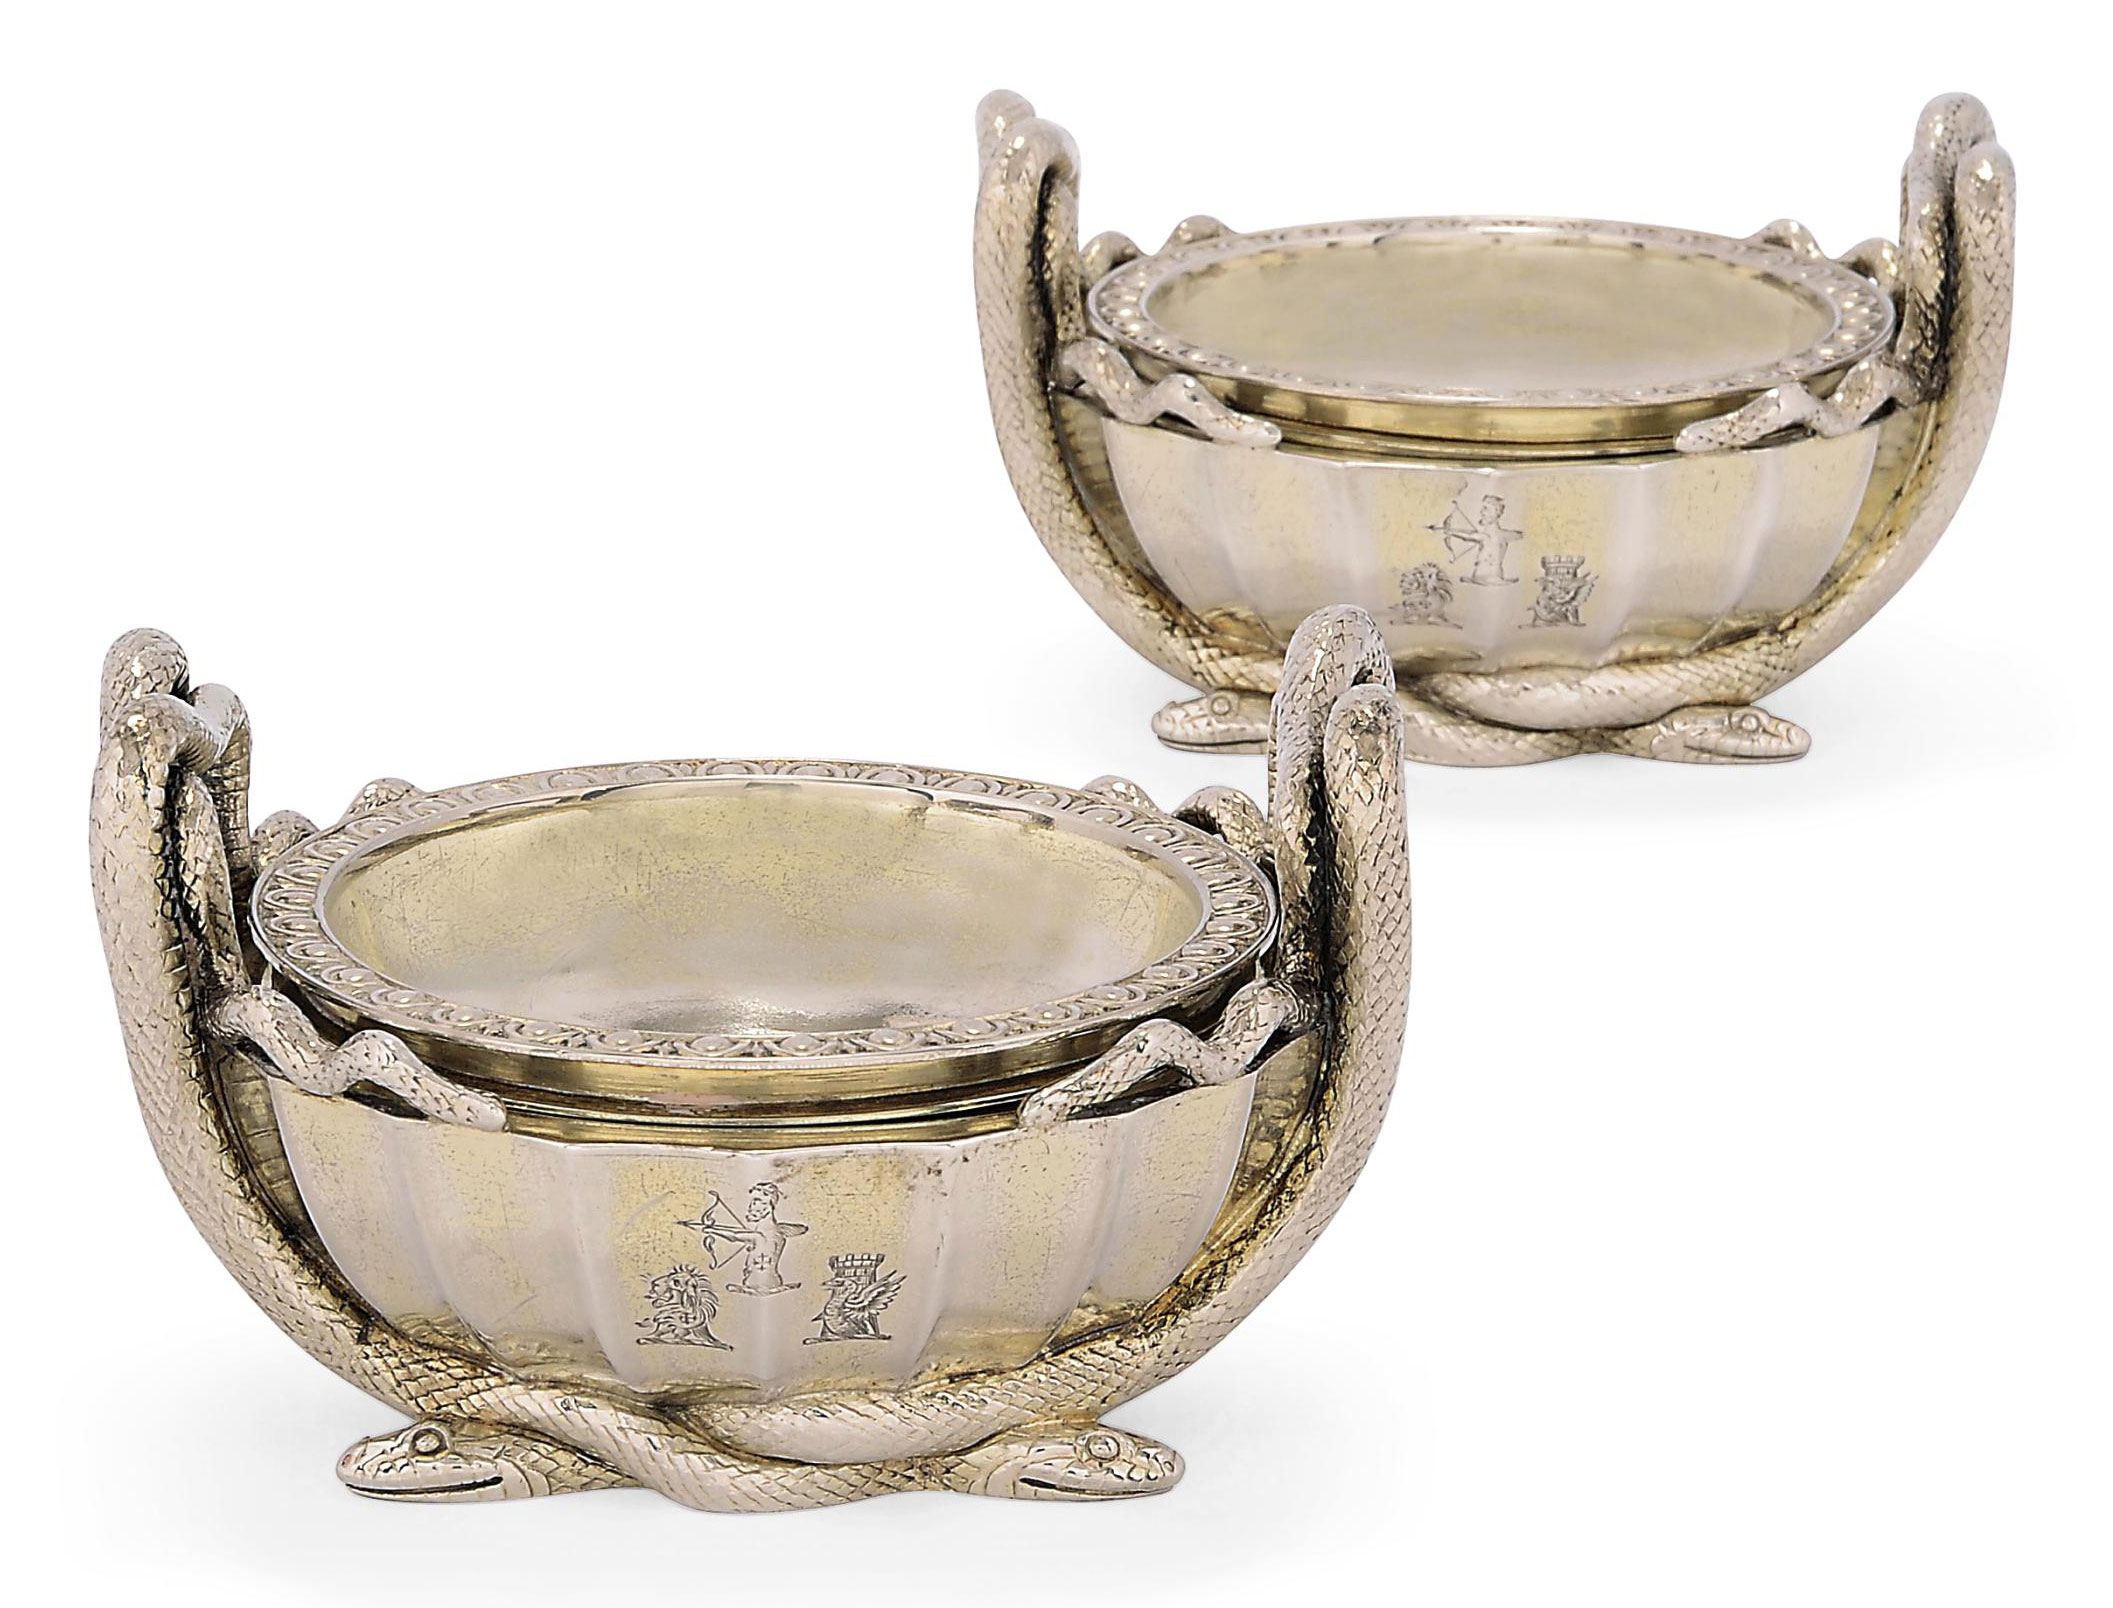 A PAIR OF GEORGE IV SILVER SALT-CELLARS WITH GEORGE III SILVER LINERS